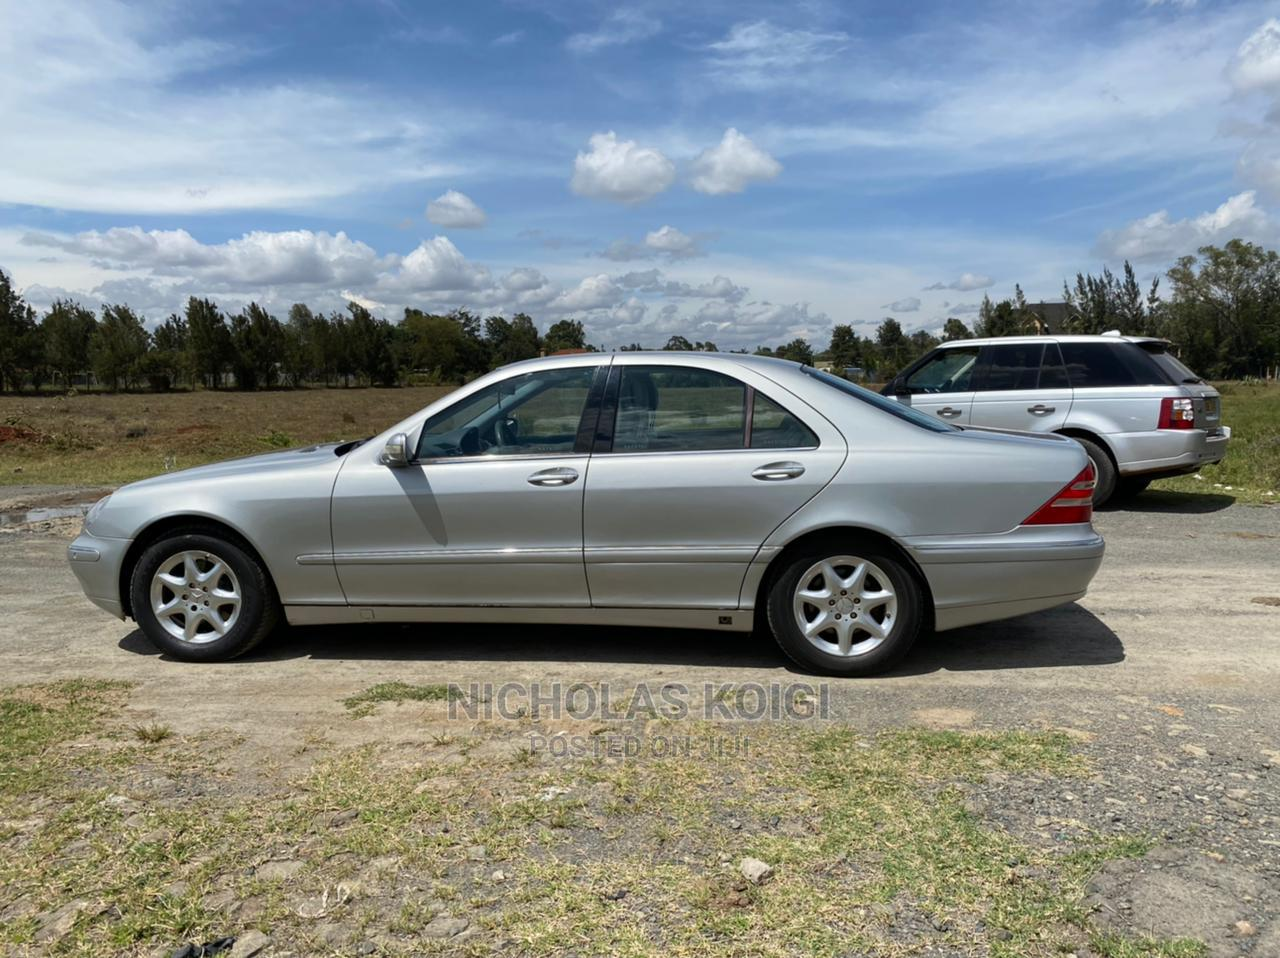 Archive: Mercedes-Benz S Class 2000 Gray